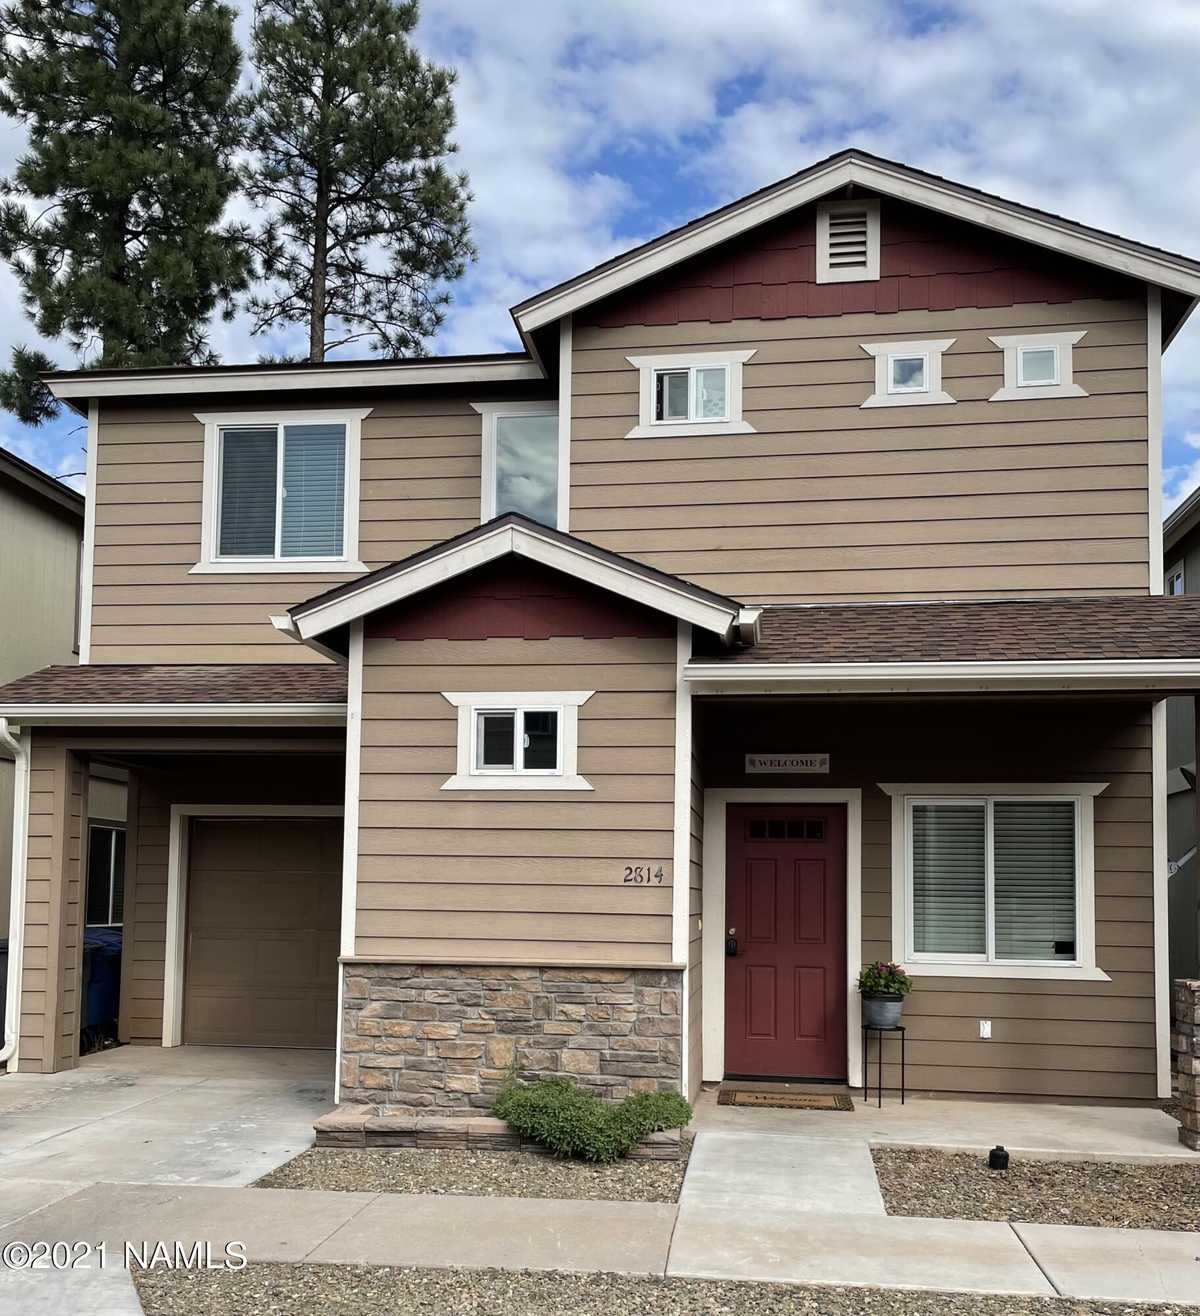 $525,000 - 3Br/3Ba -  for Sale in Flagstaff